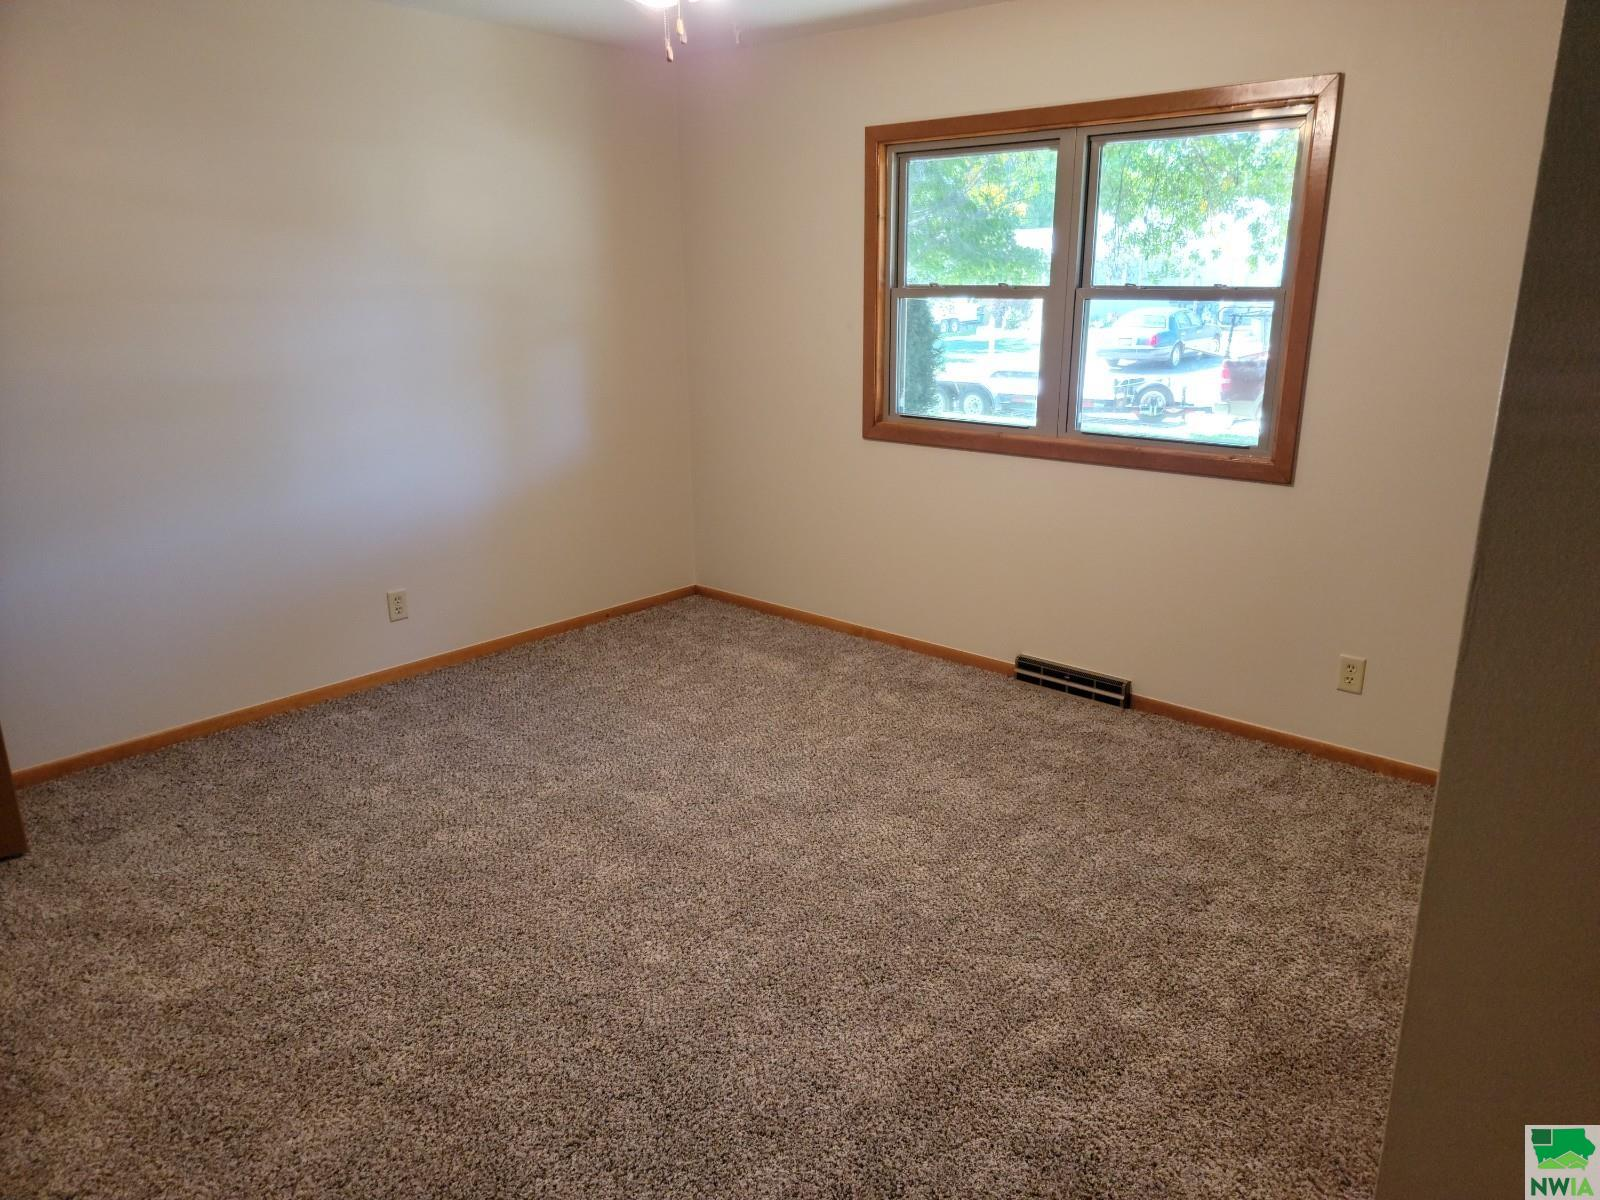 MLS# 814881 for Sale